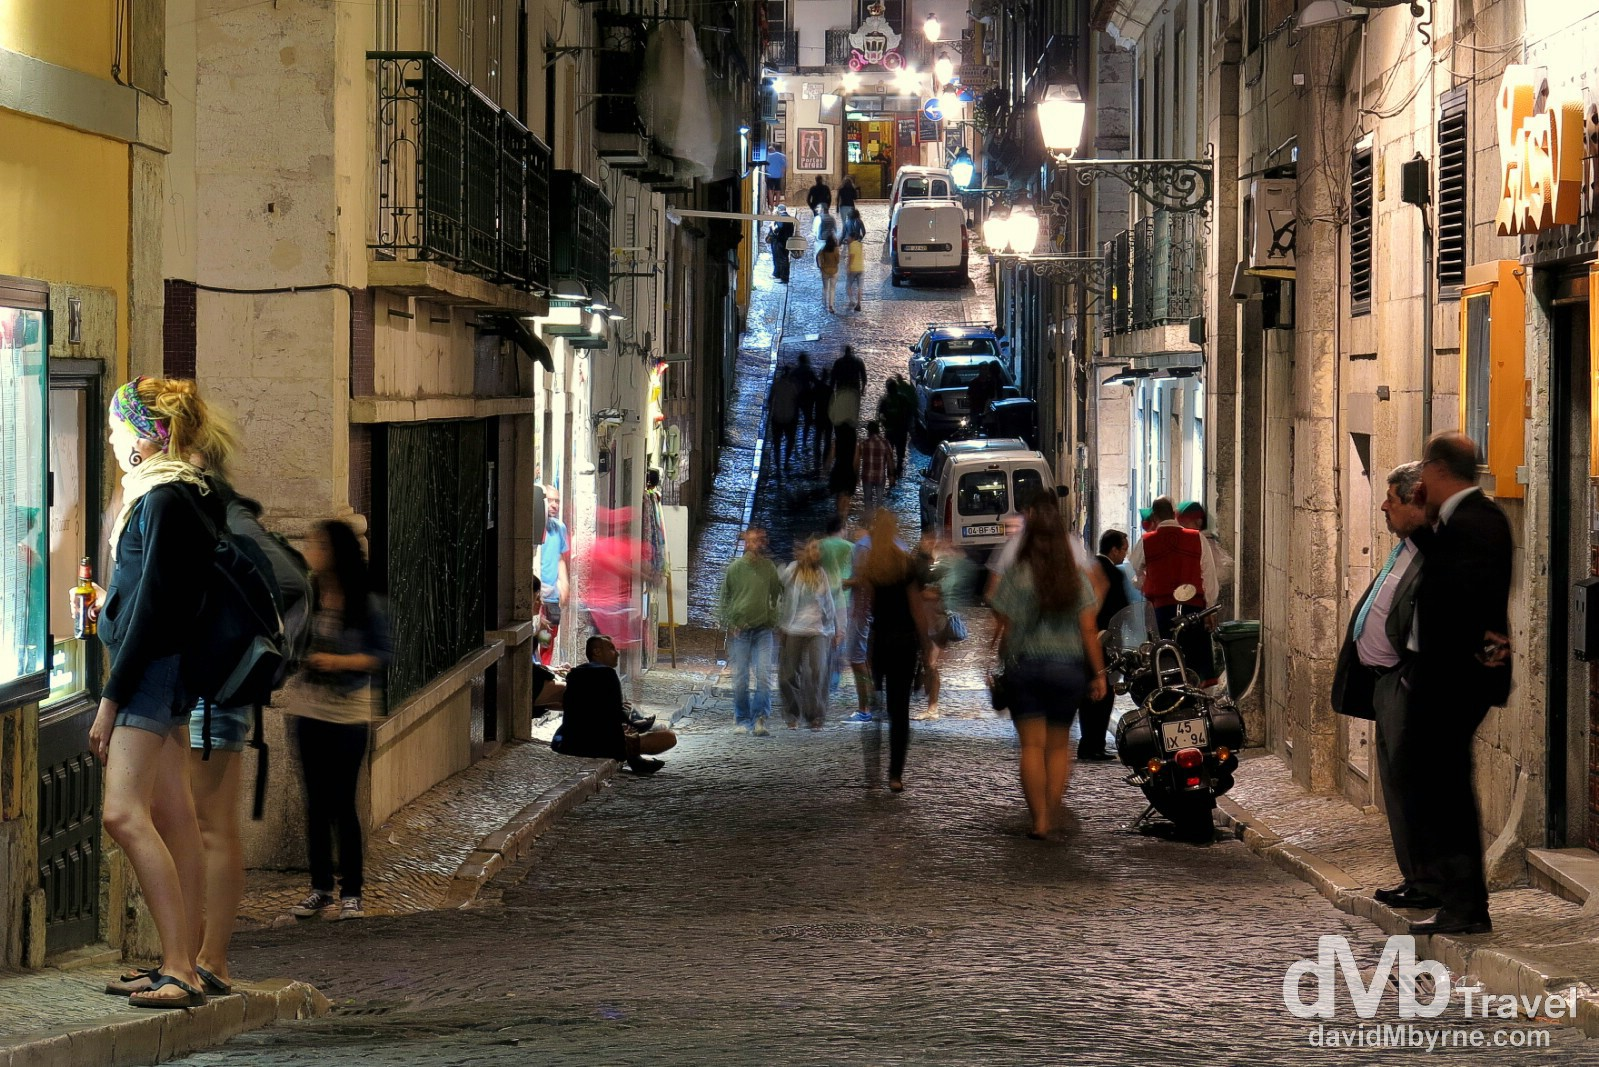 Travessa Da Queimada in the nightlife Bairro Alto district of Lisbon, Portugal. August 24th 2013.